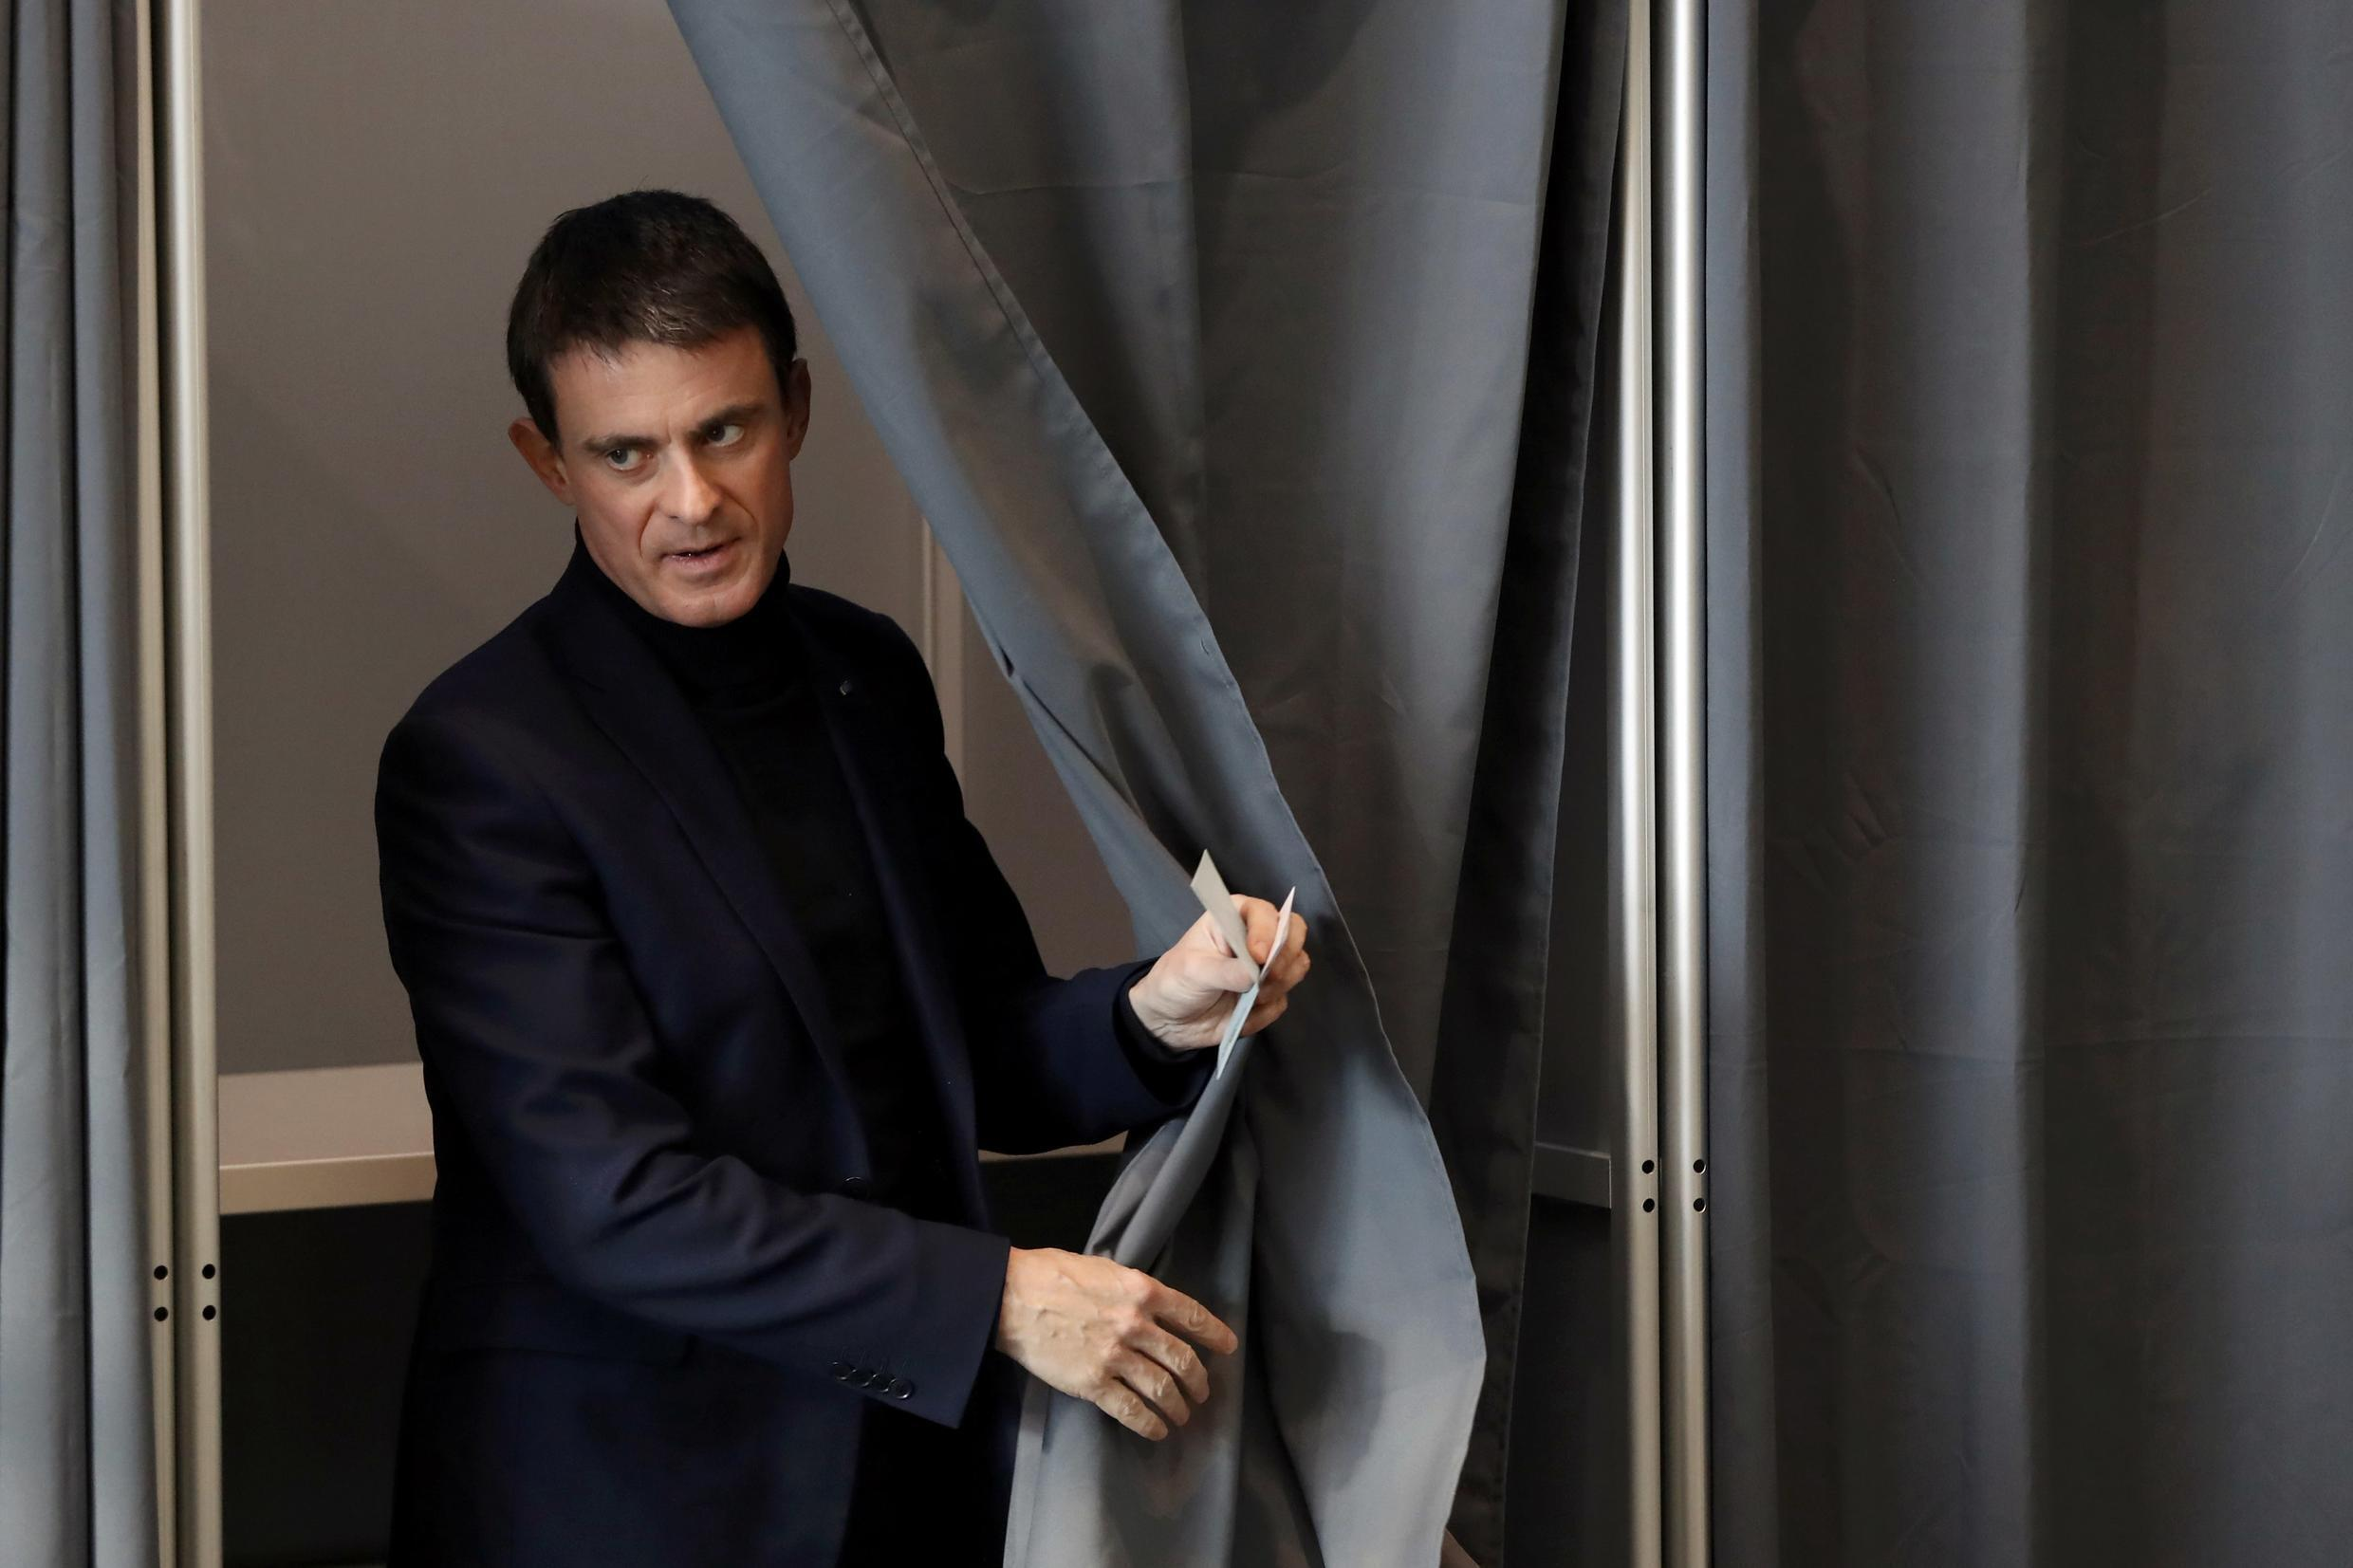 Former French Prime Minister and candidate Manuel Valls holds his ballot as he votes in the first round of the French left's presidential primary election in Evry, France, January 22, 2017.